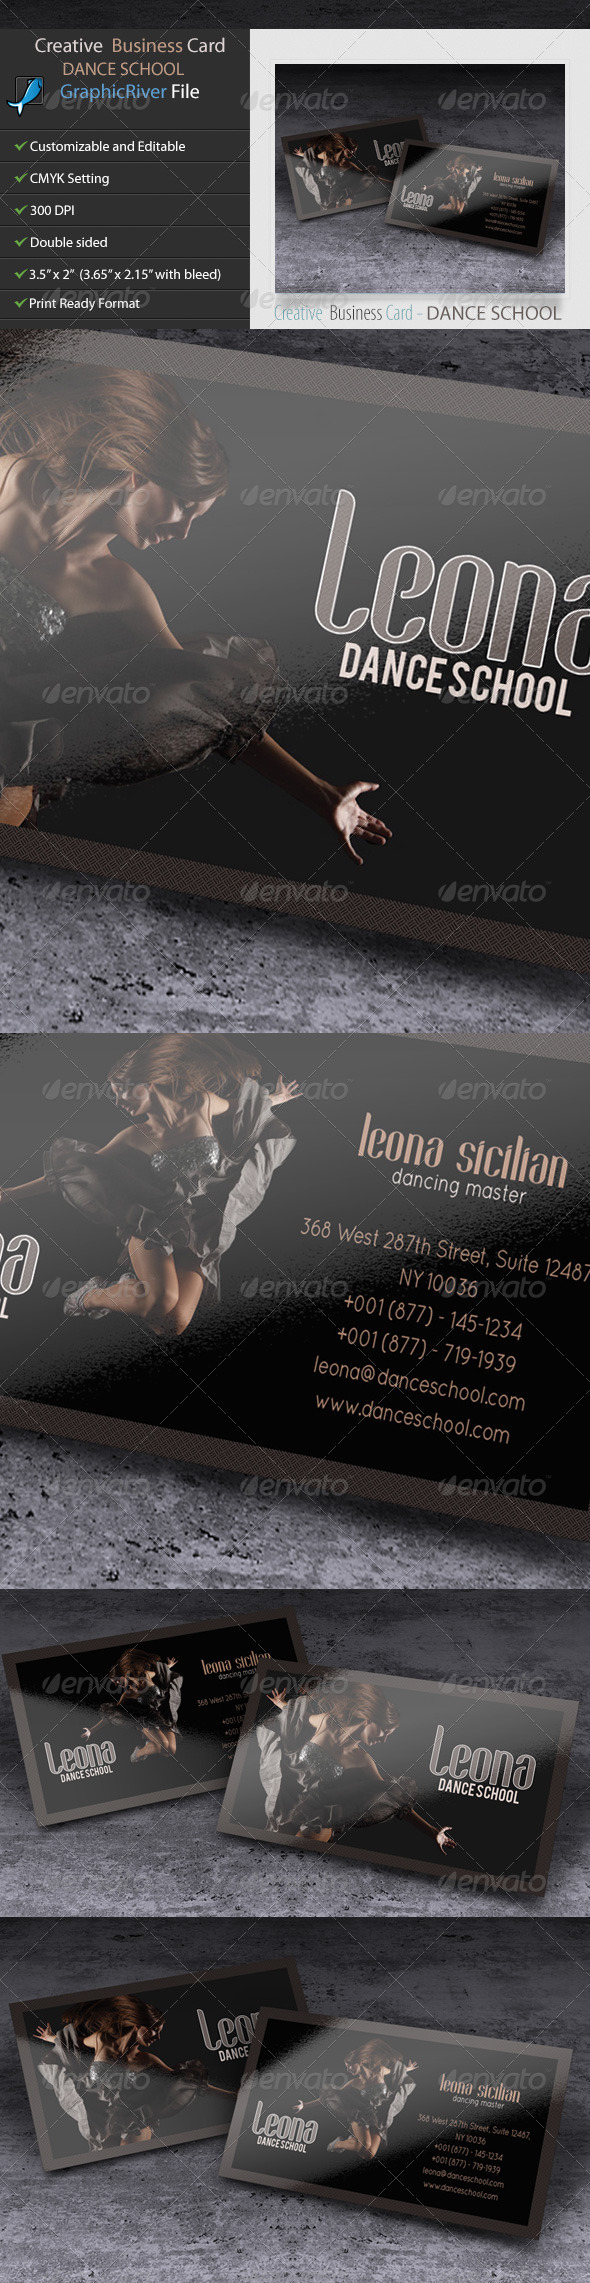 GraphicRiver Creative Business Card Dance School 5610518